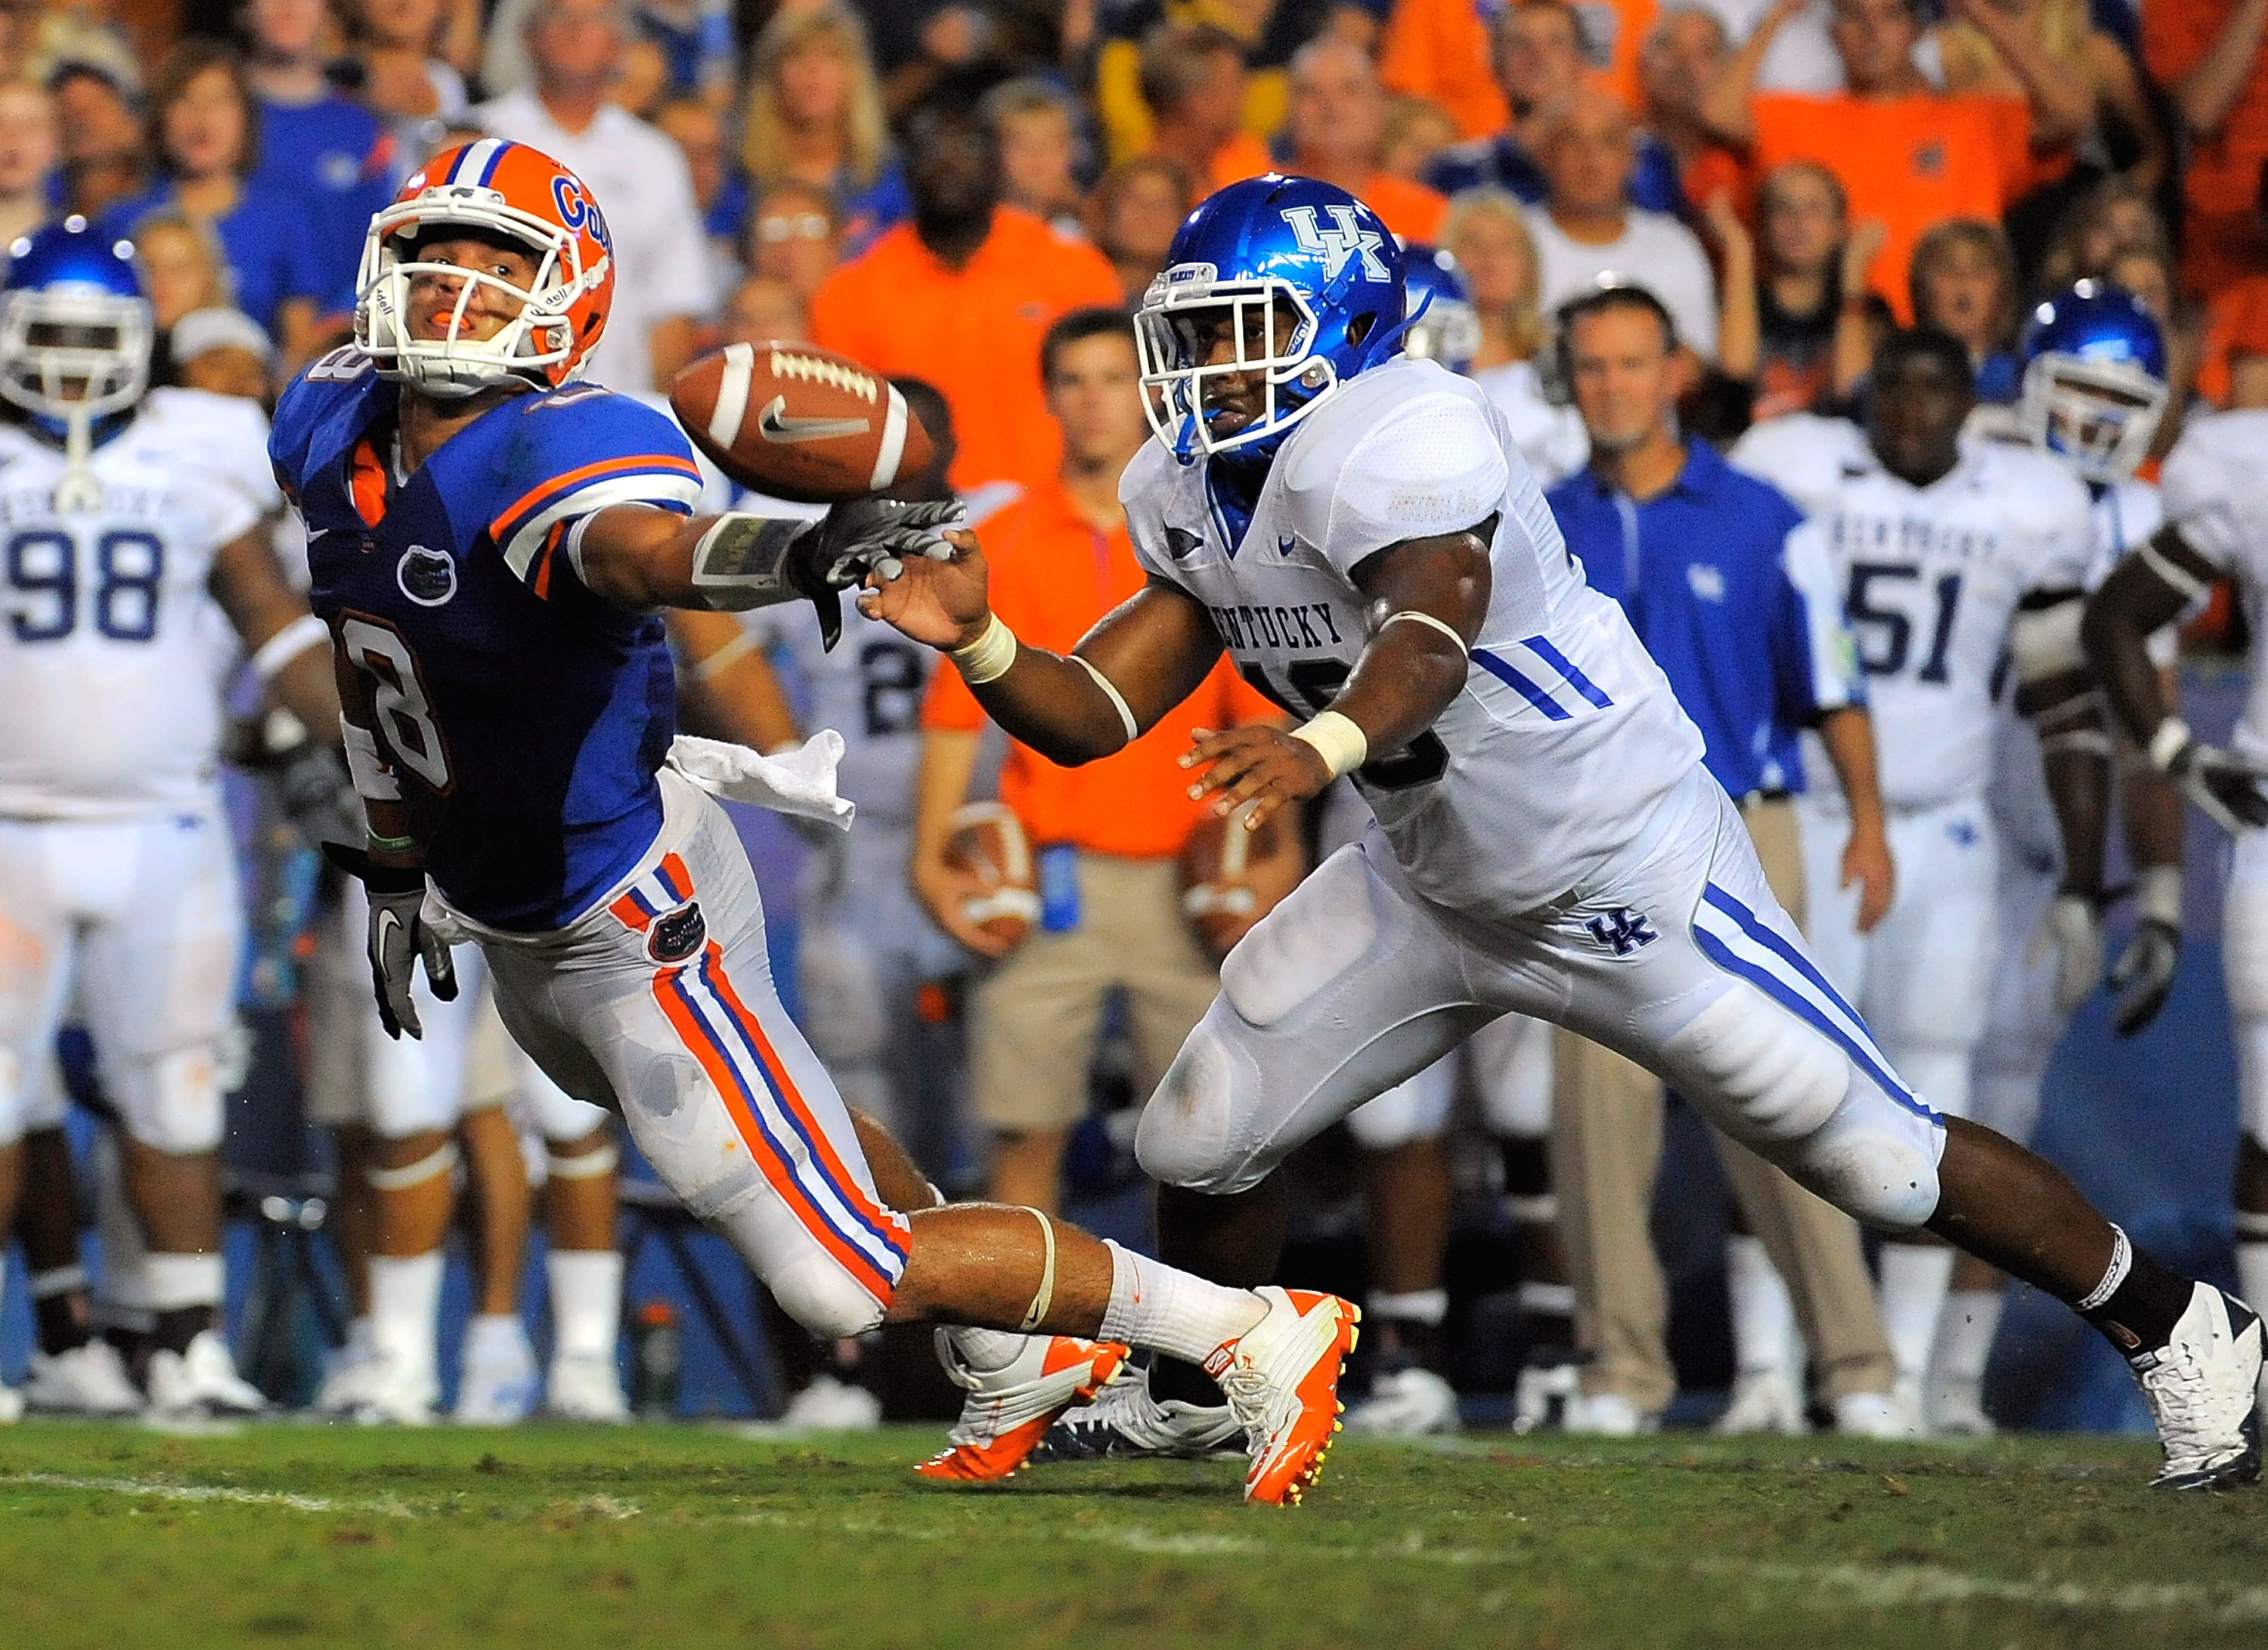 GAINESVILLE, FL - SEPTEMBER 25:  Half back Trey Burton #8 of the Florida Gators can't hang onto a pass in front of linebacker Ridge Wilson #48 of the Kentucky Wildcats at Ben Hill Griffin Stadium on September 25, 2010 in Gainesville, Florida.  (Photo by D